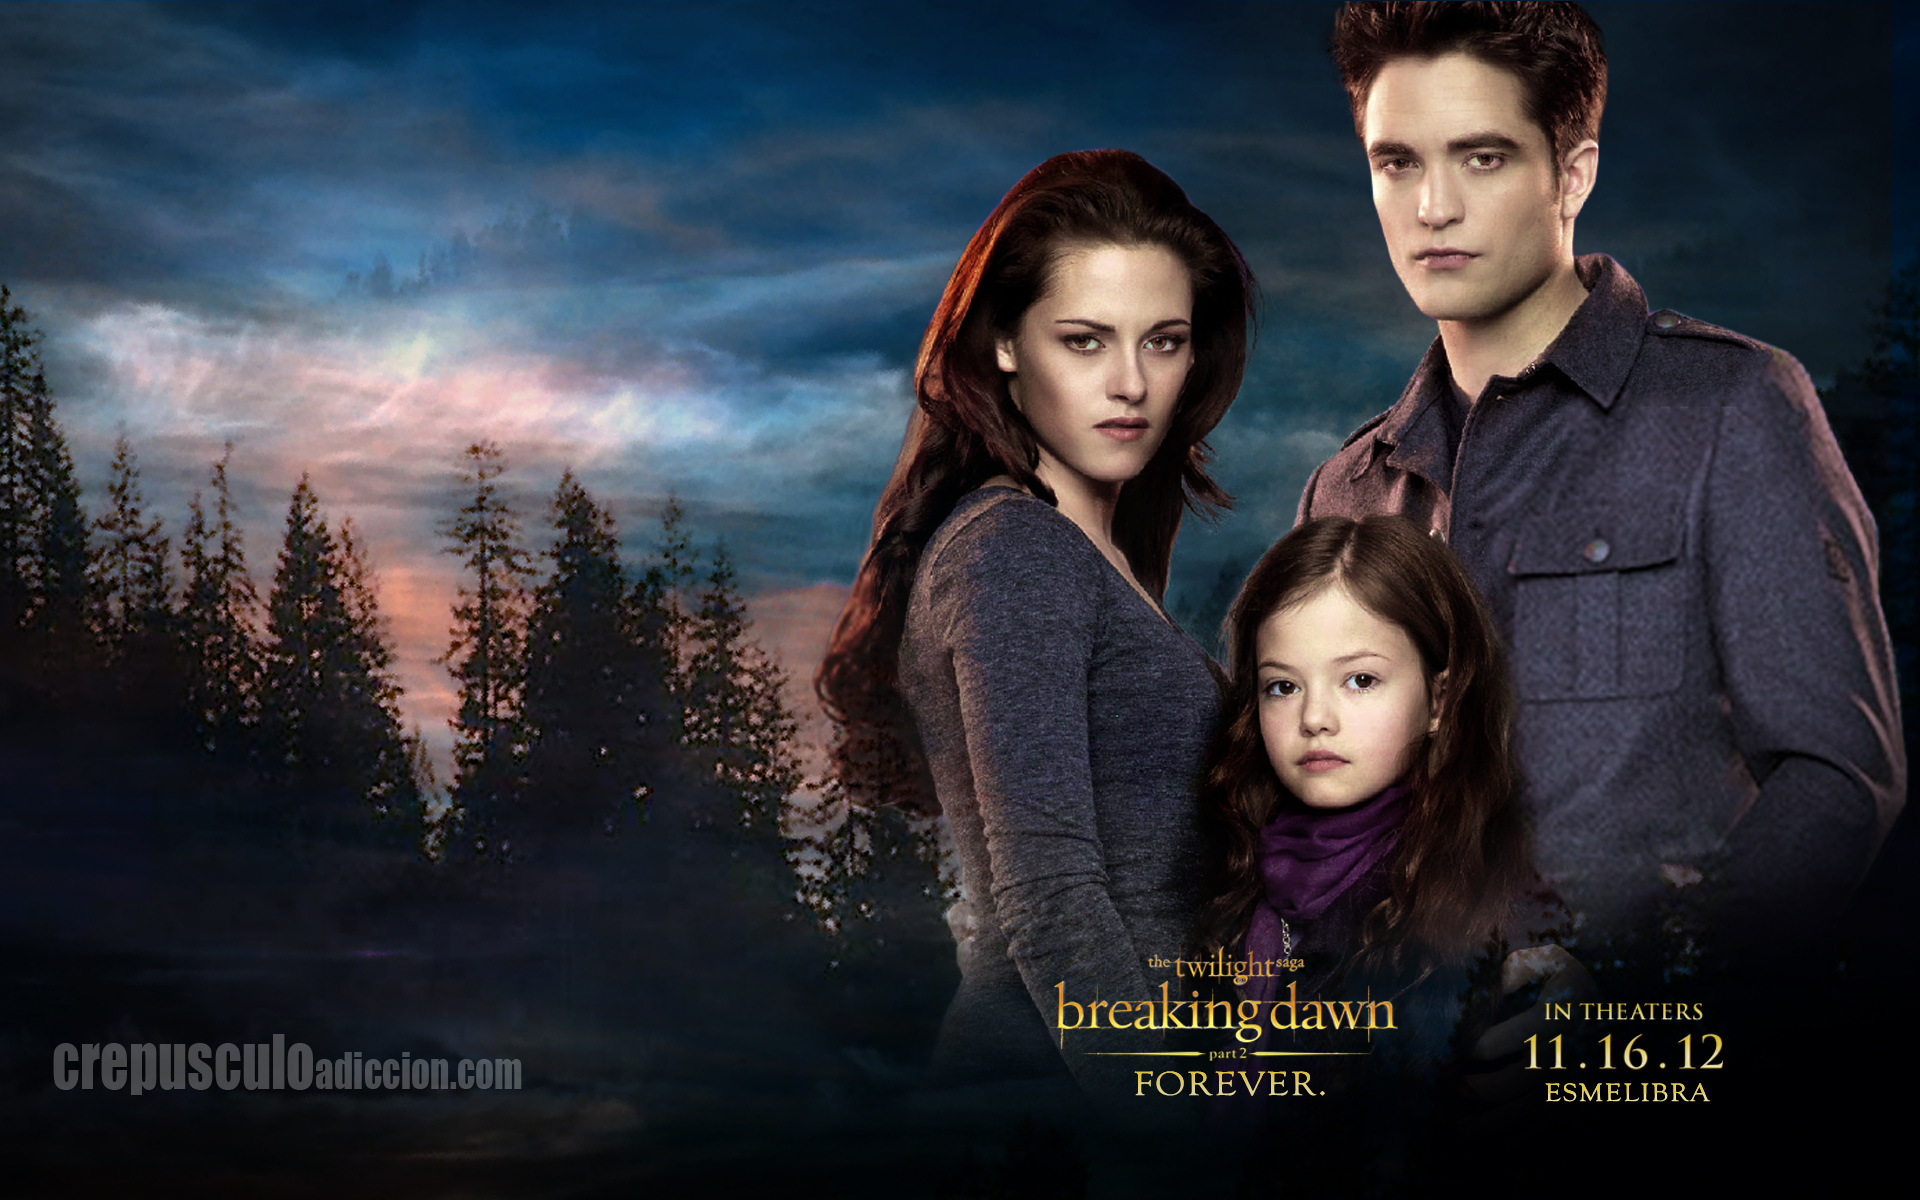 download twilight saga wallpapers free download gallery